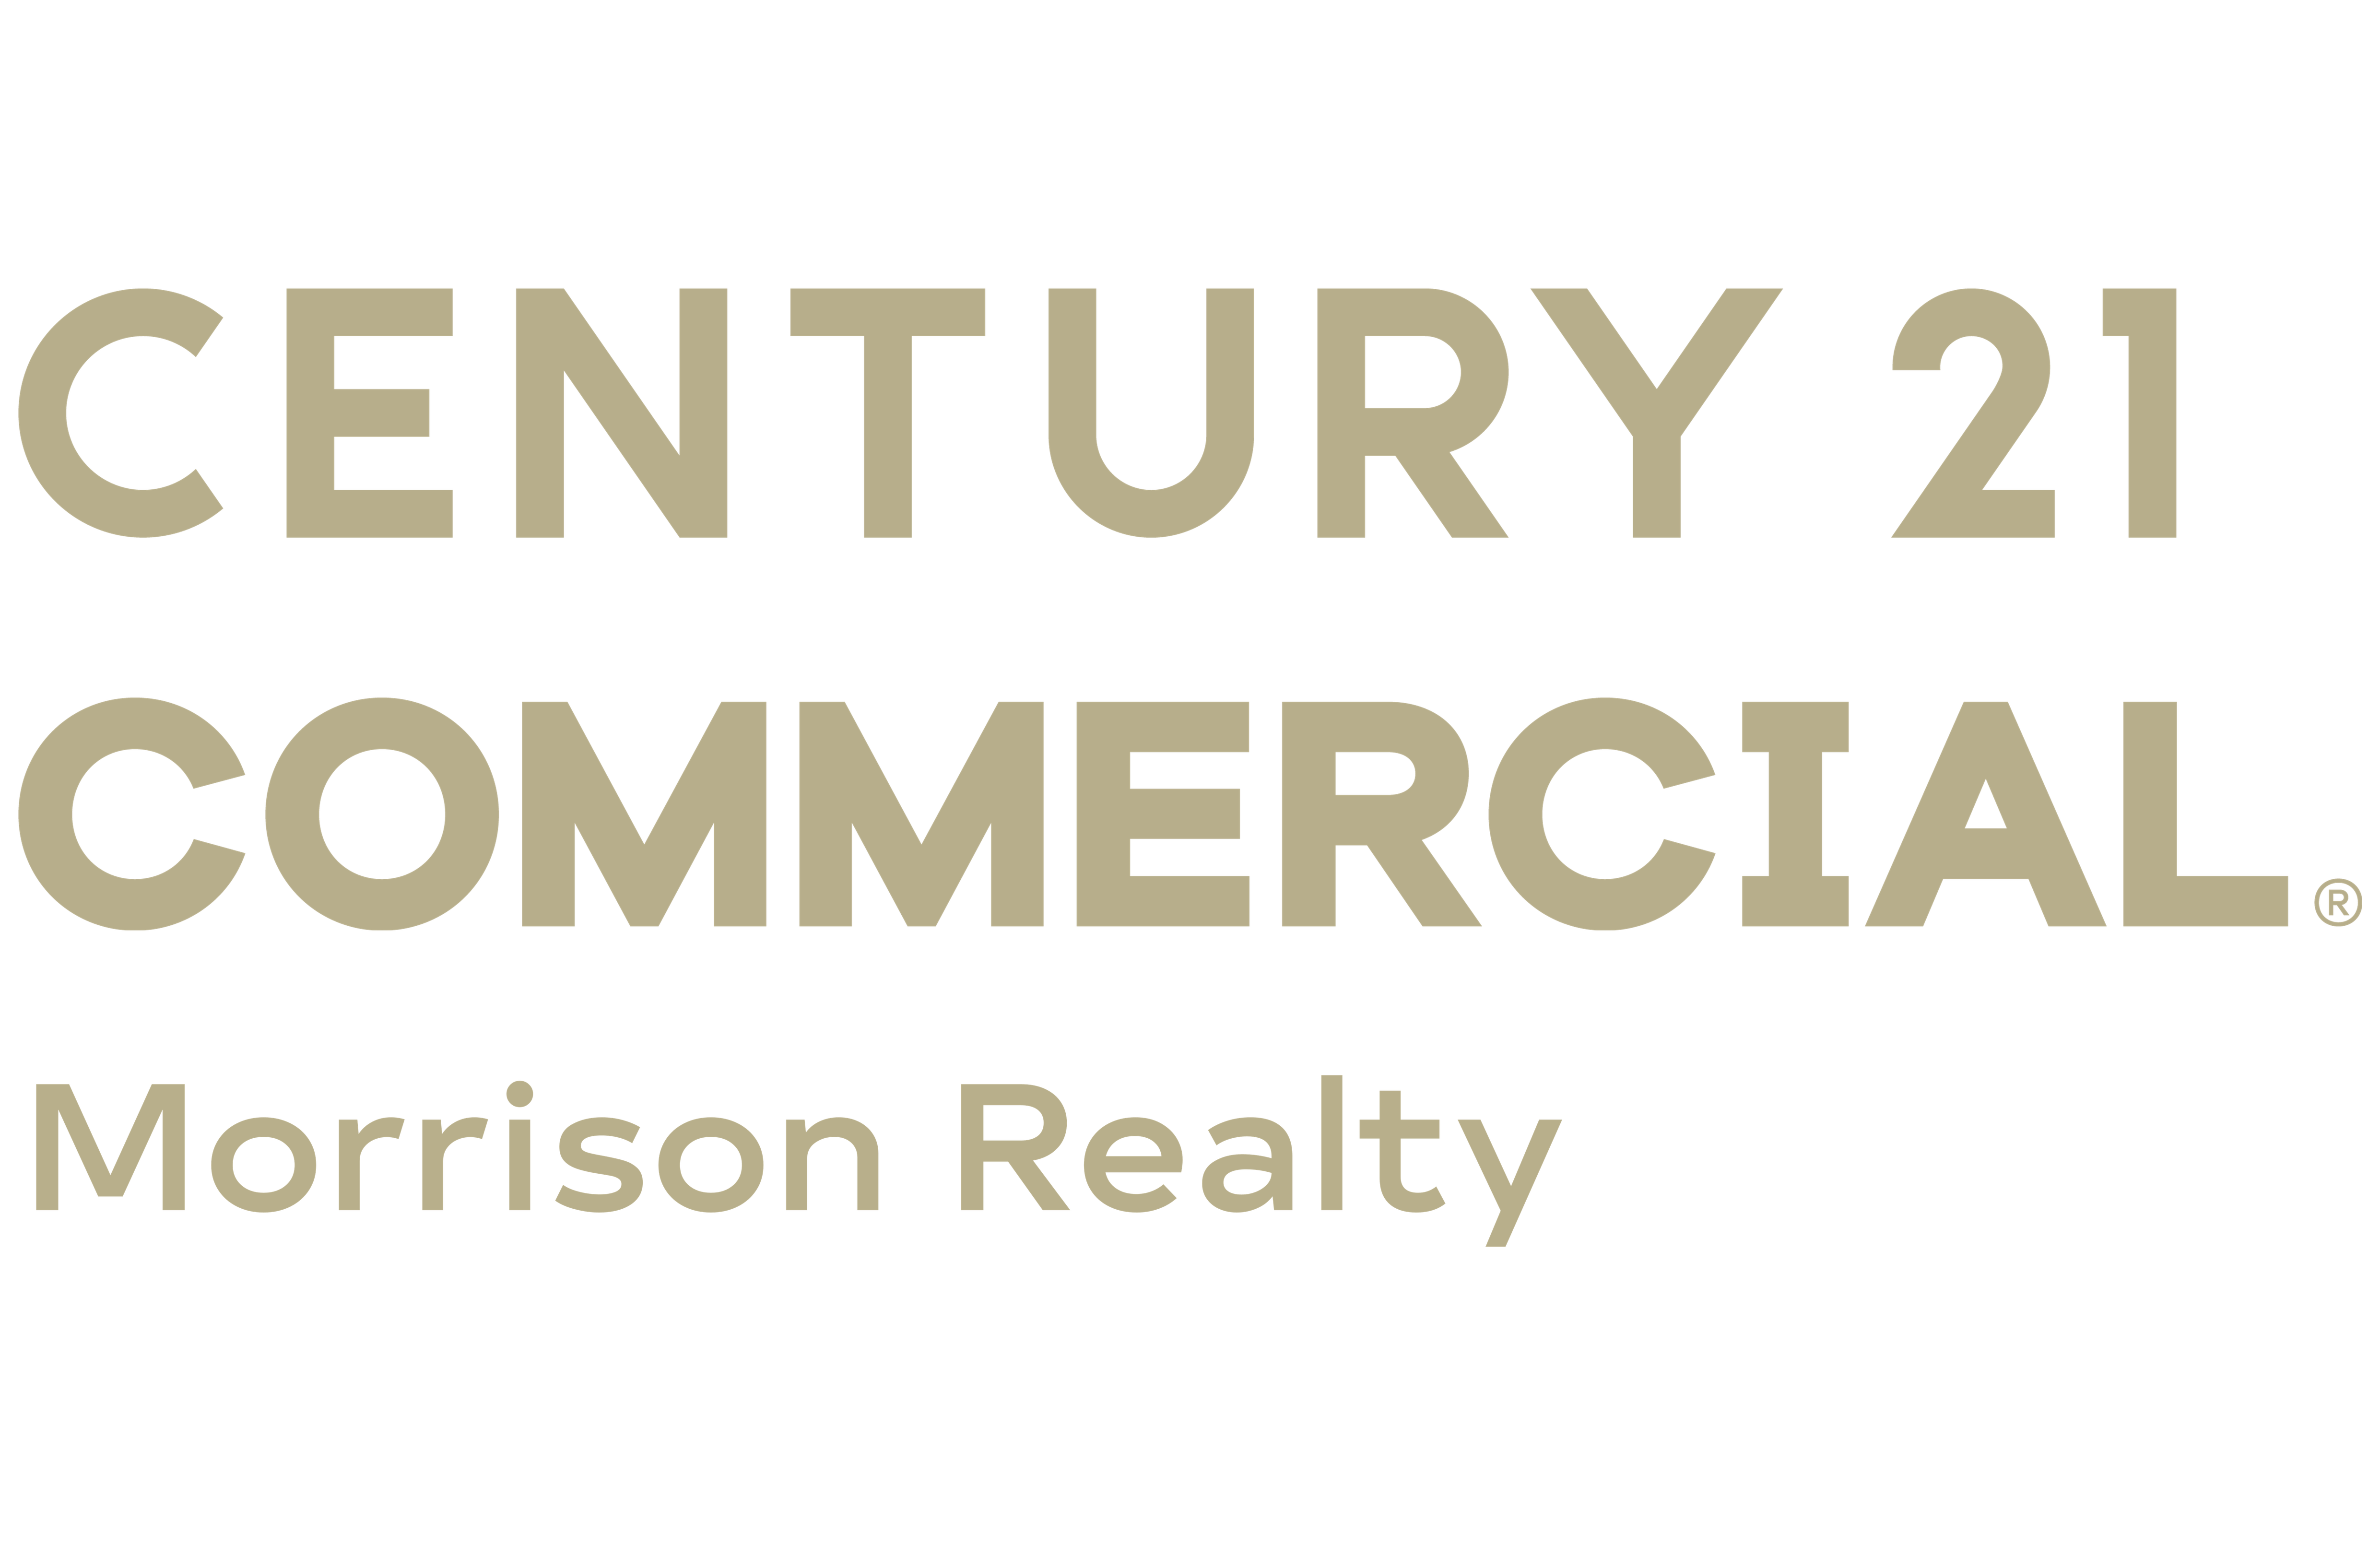 Jan Frohlich of CENTURY 21 Morrison Realty logo